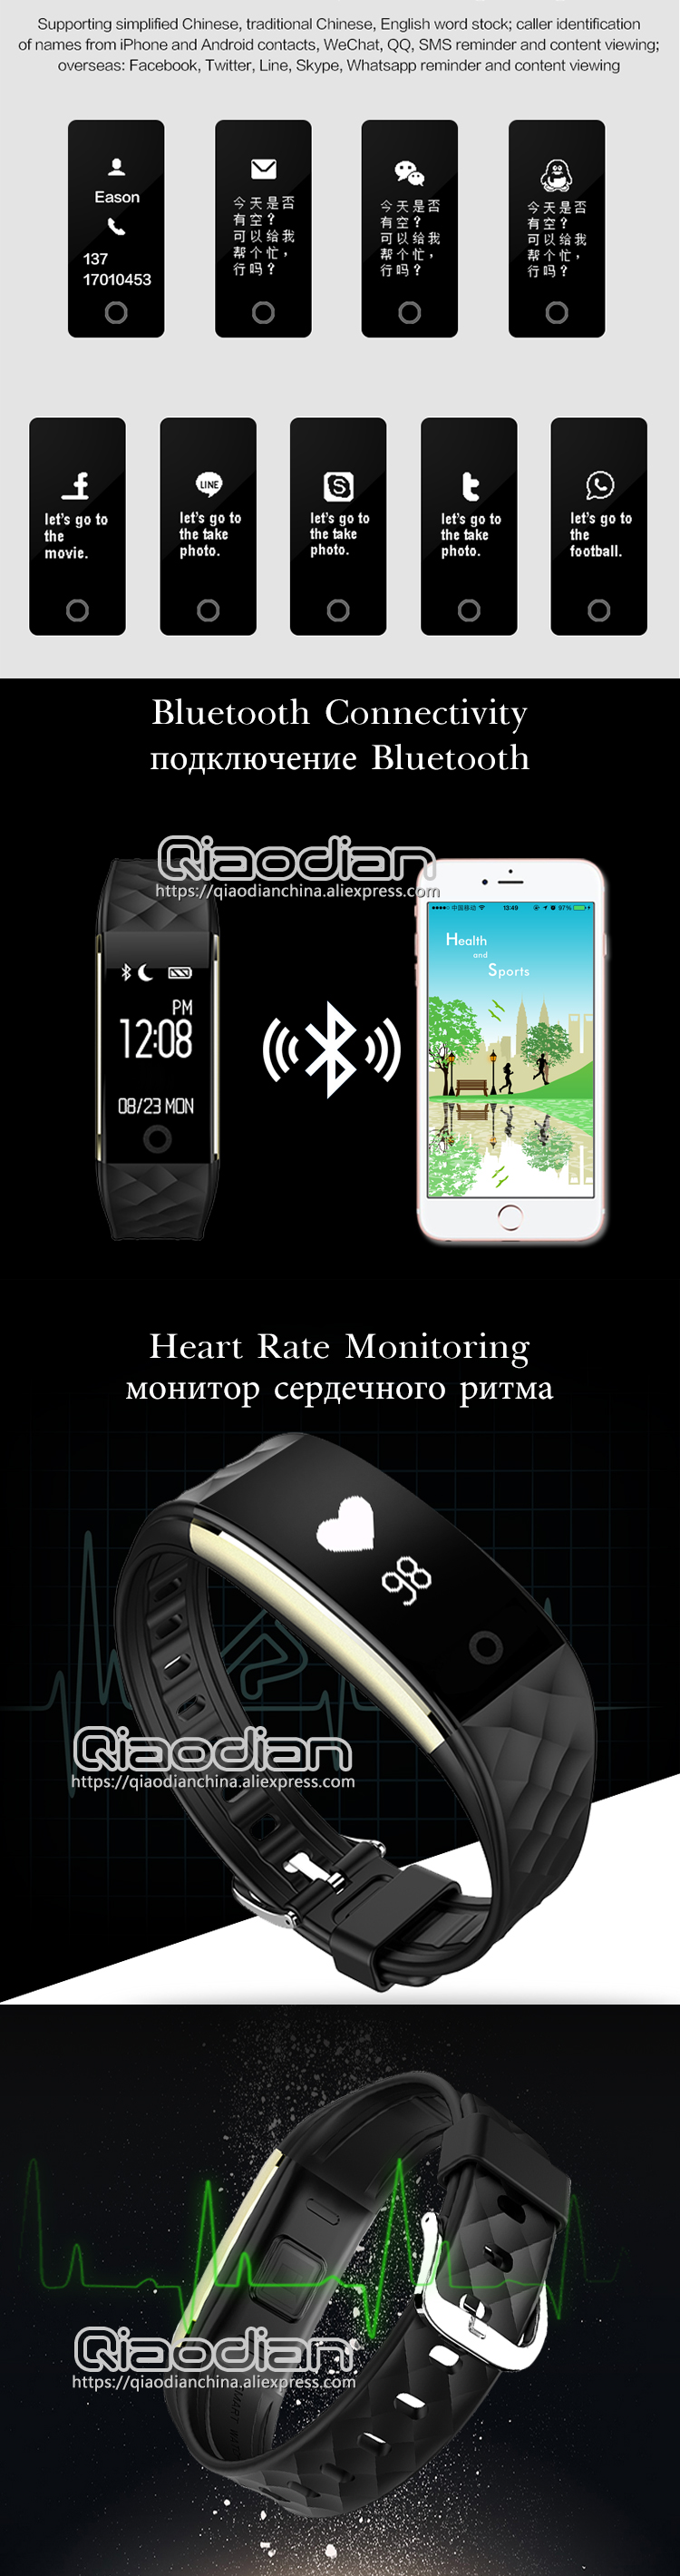 Fashion Music Control Swim Bluetooth Connectivity Smart Watch Clock Smartwatch Heart Rate Monitoring Fitness Watch Android iOS 2